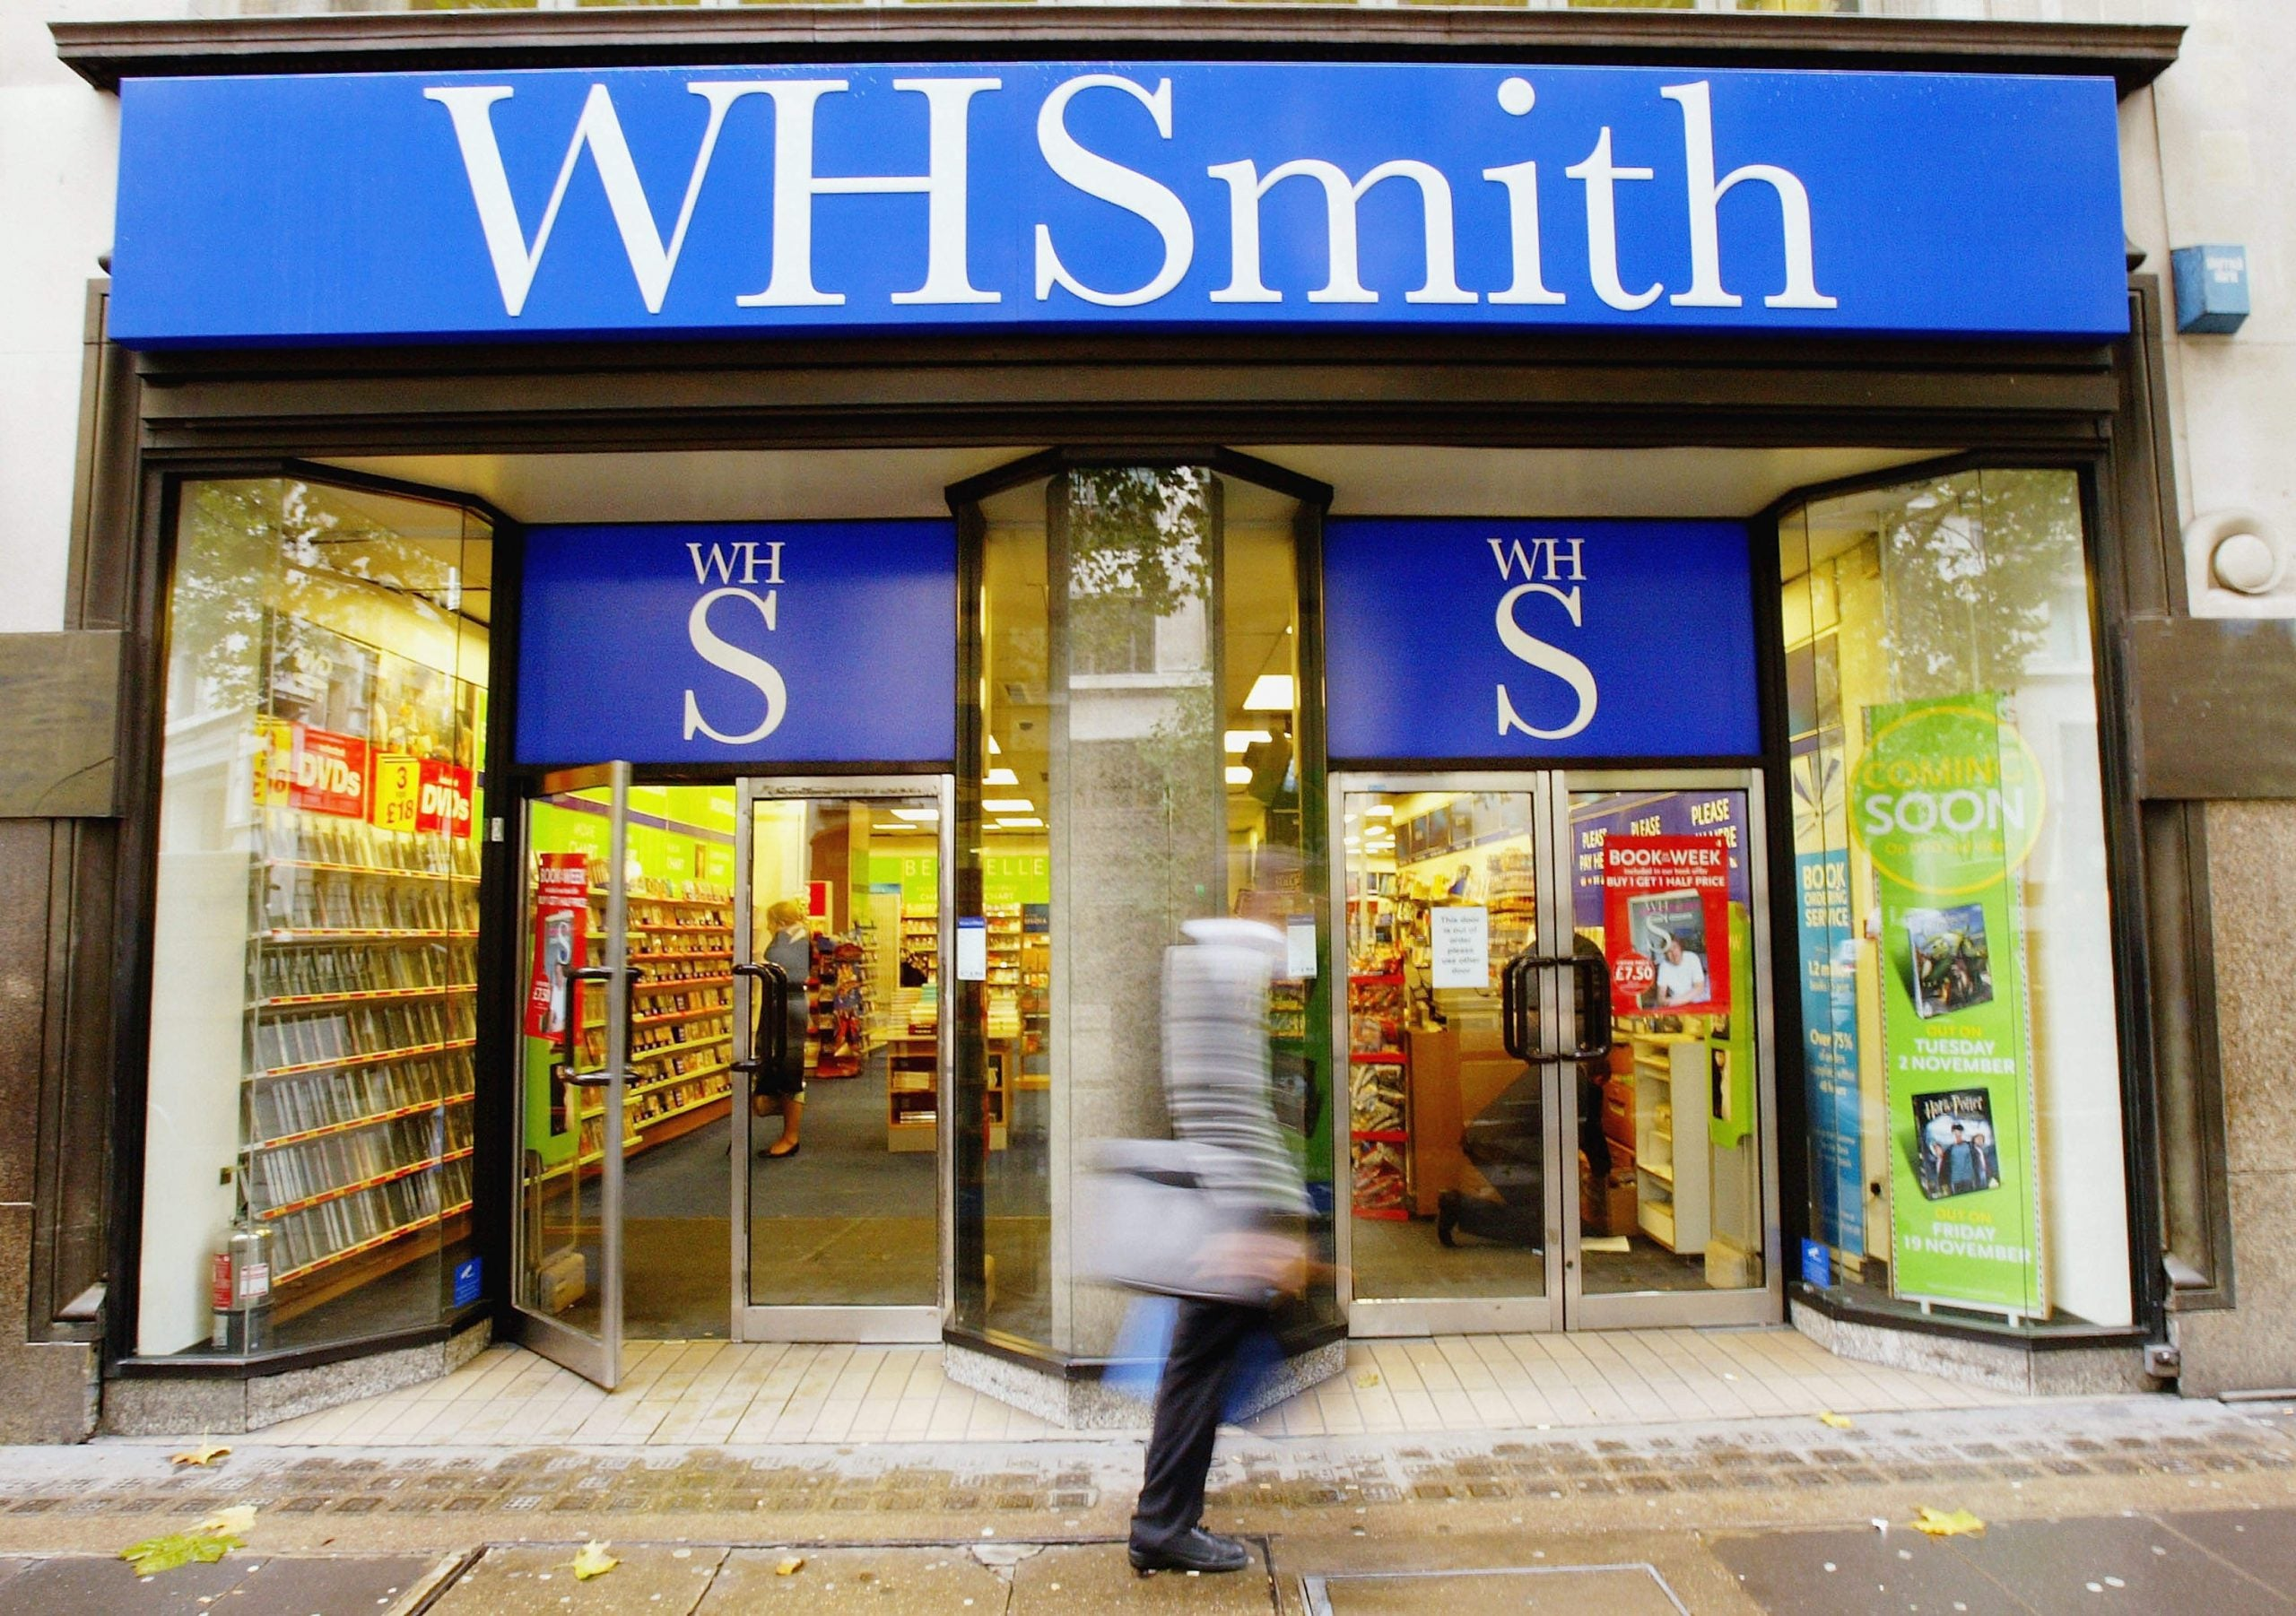 When WHSmith started selling porn next to the Kinder Eggs, I set out on a clean-up mission